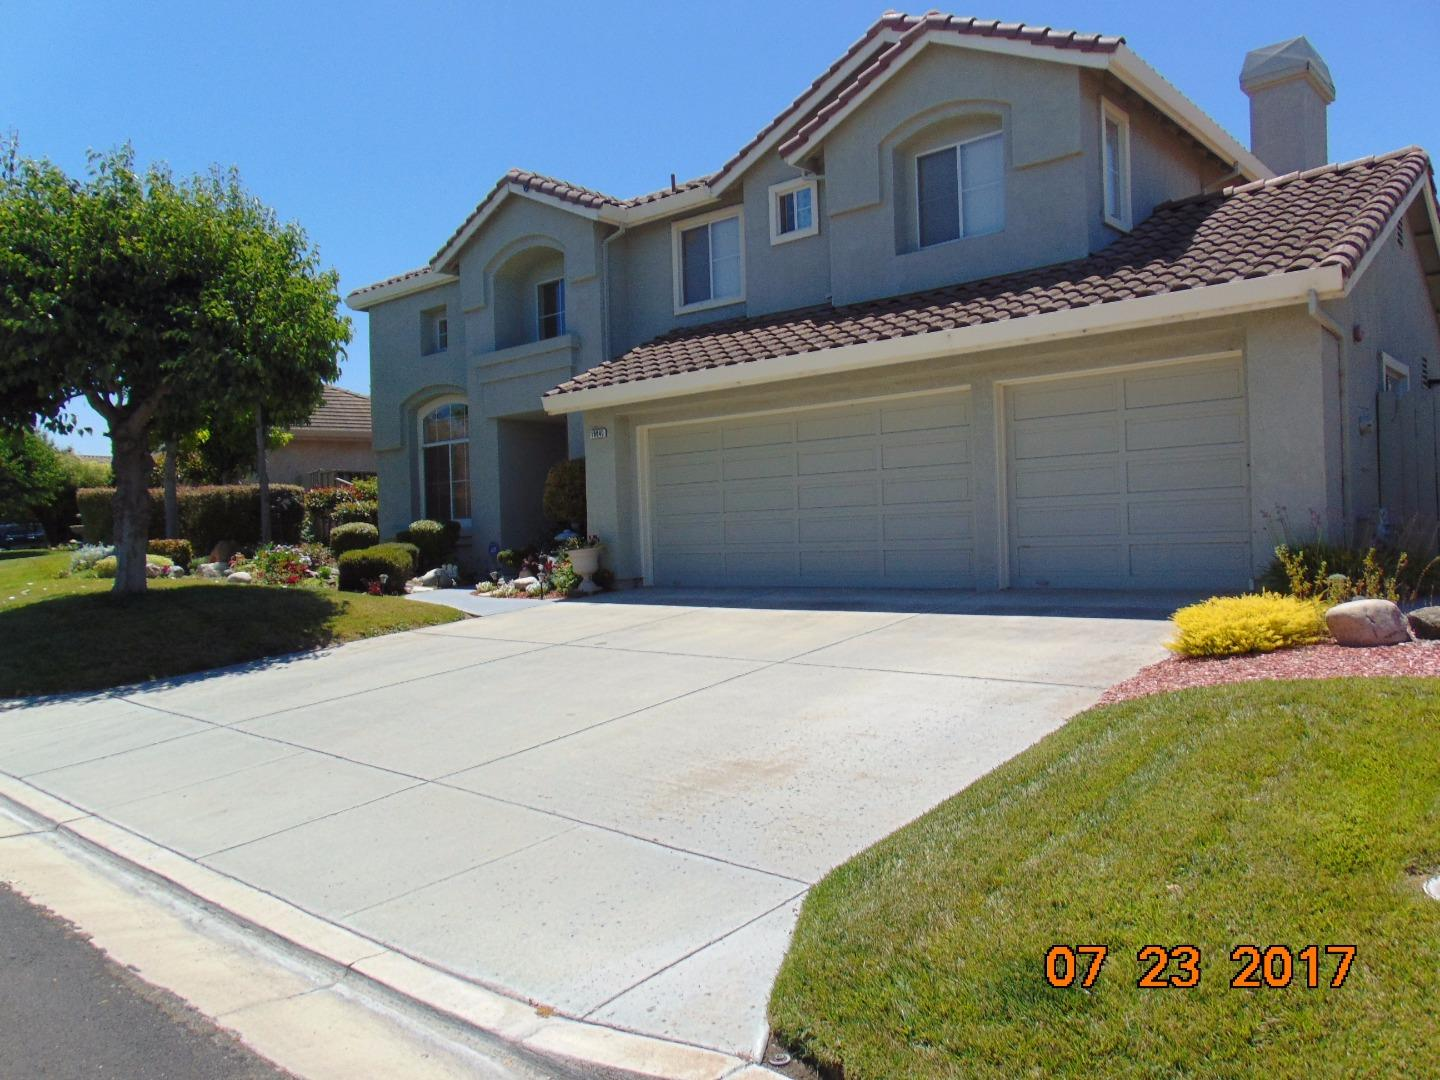 Additional photo for property listing at 19040 Fieldstone Court  Salinas, カリフォルニア 93908 アメリカ合衆国